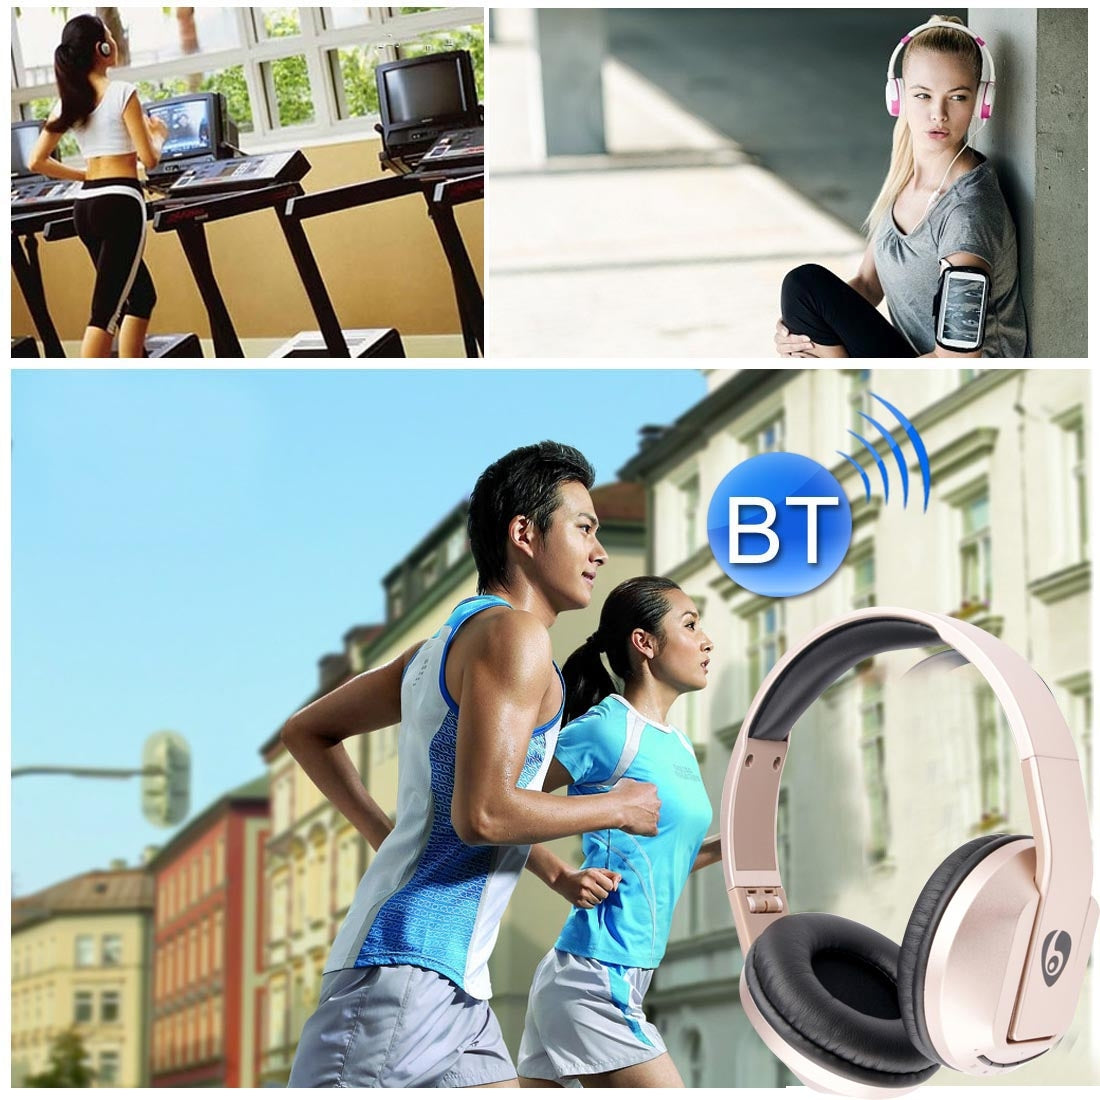 OVLENG S77 Headband Universal Folding Bluetooth Headset with Handsfree Call Function , for iPhone / Samsung / LG / HTC / Nokia / Blackberry Mobile Phone(Gold)